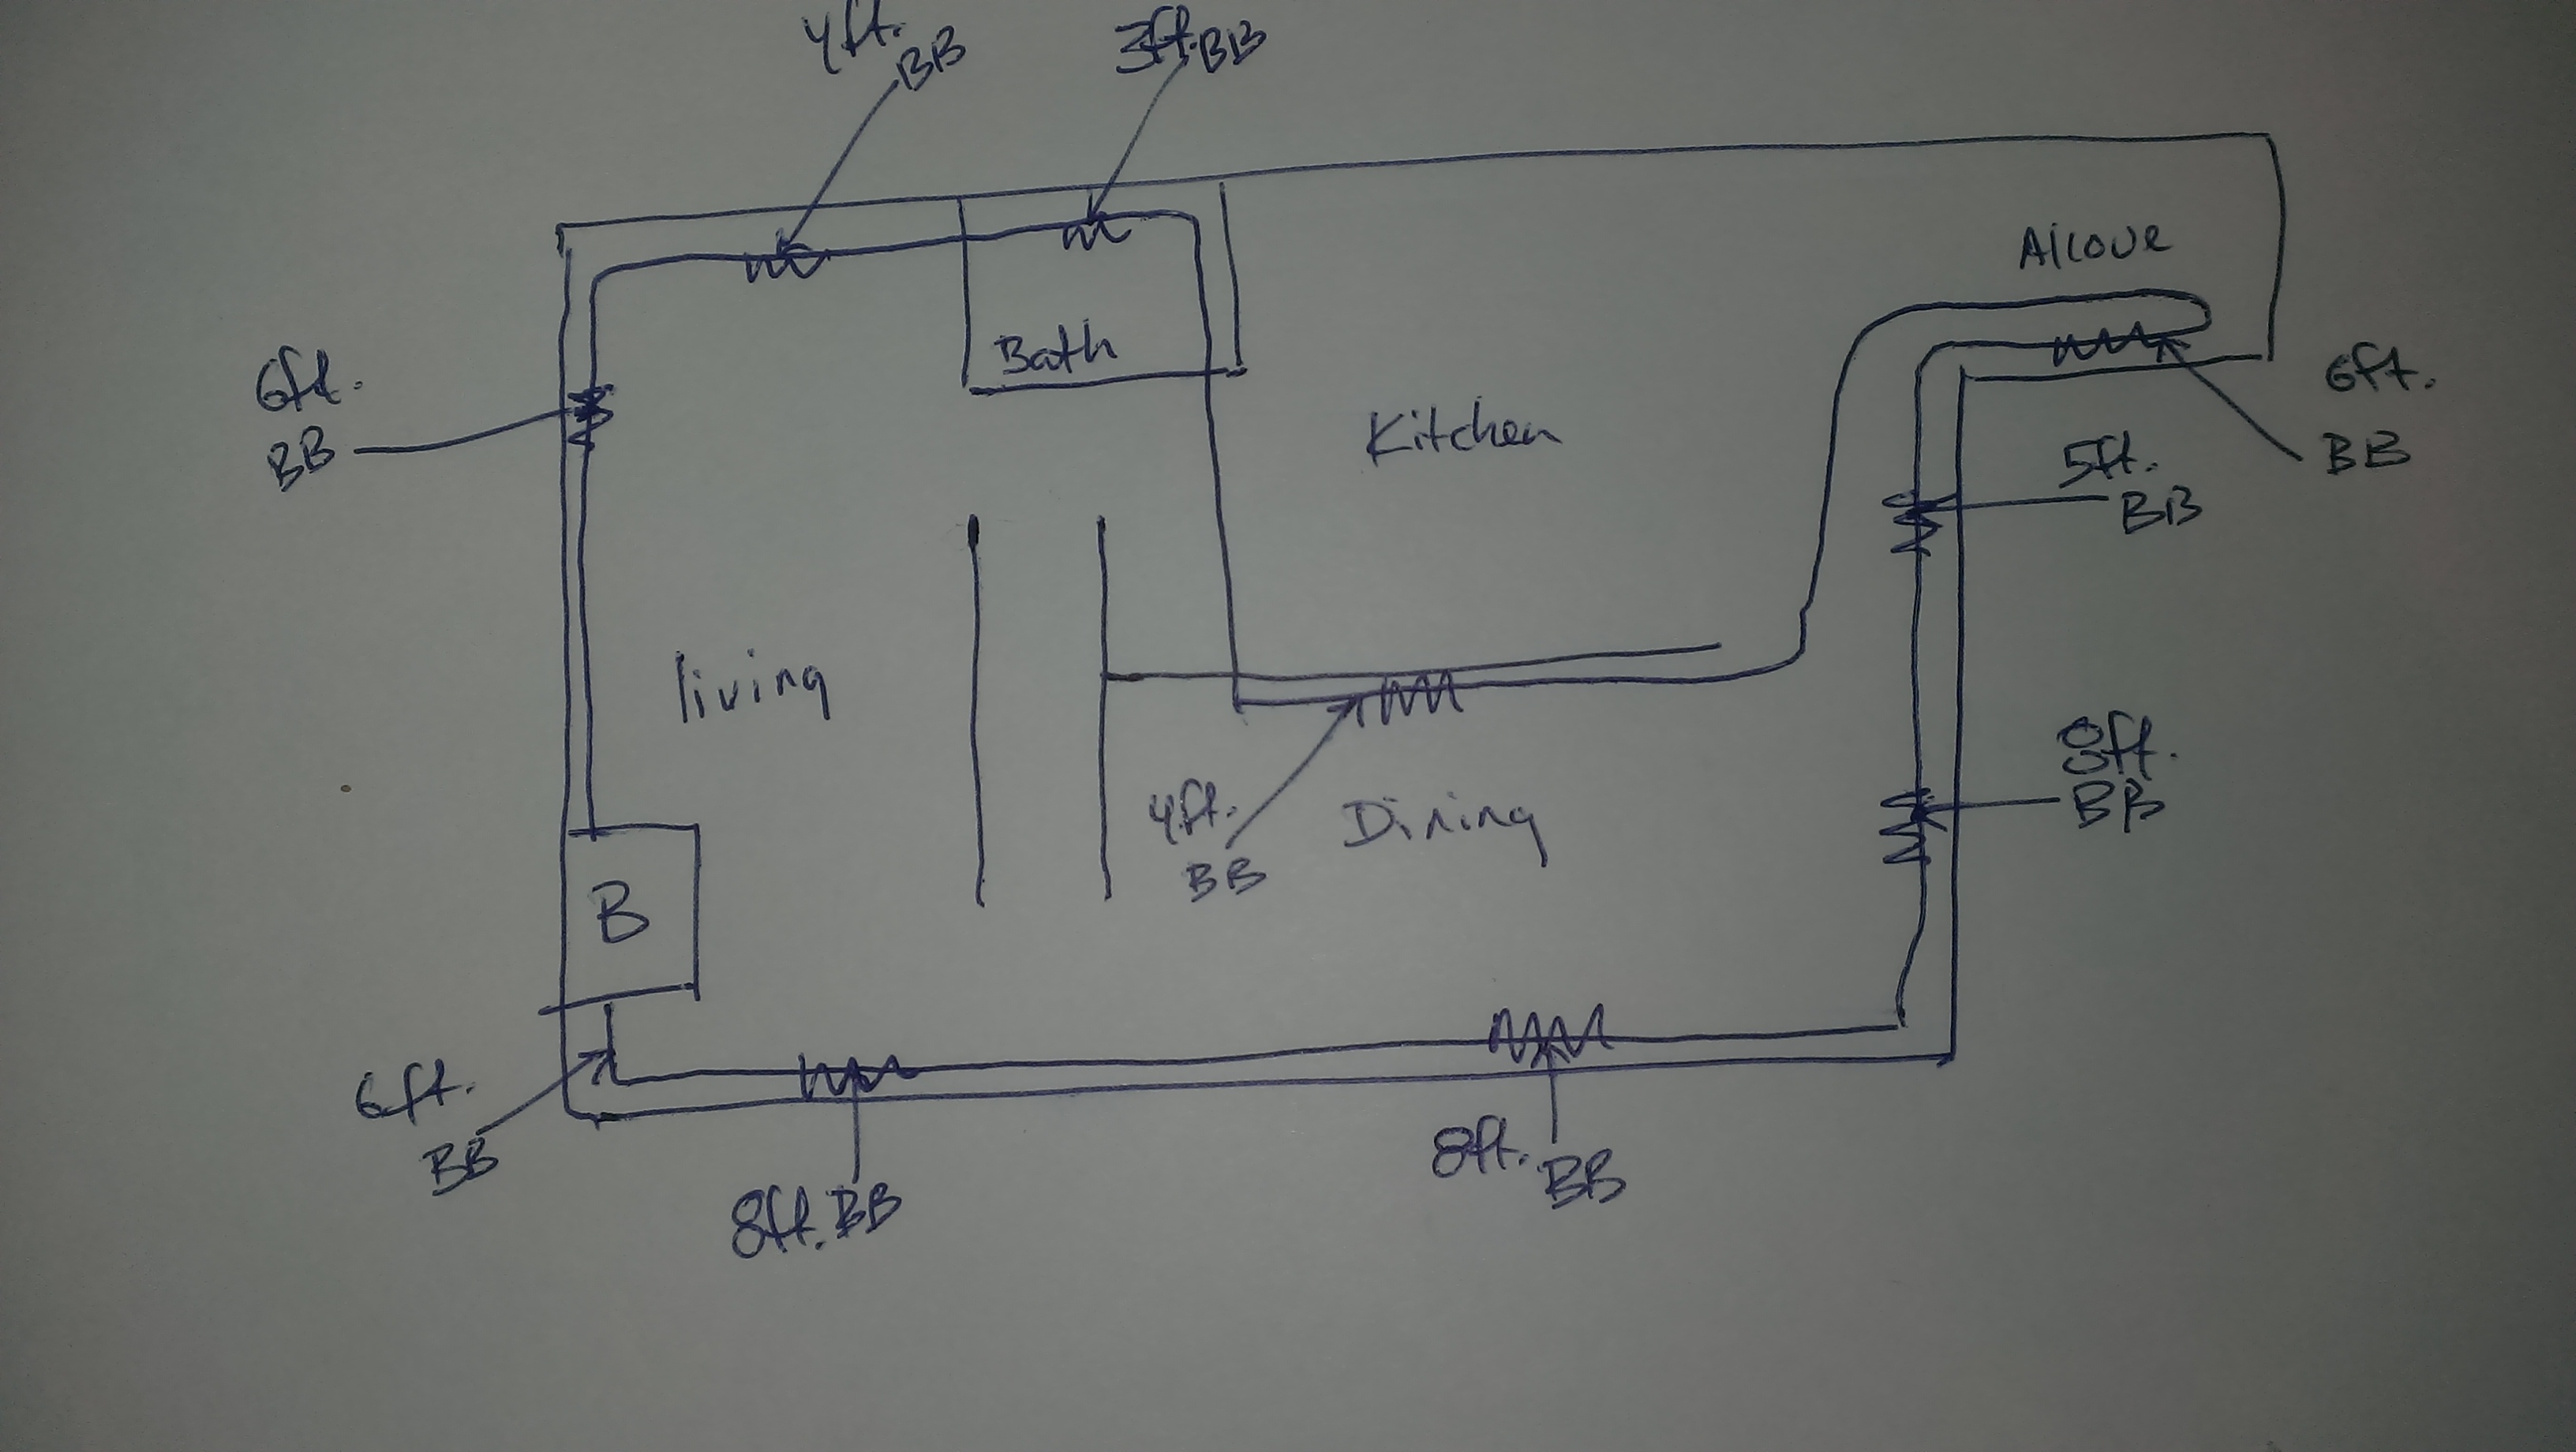 IMAG1101 generous laars boilers wiring diagrams mozambique wikipedia